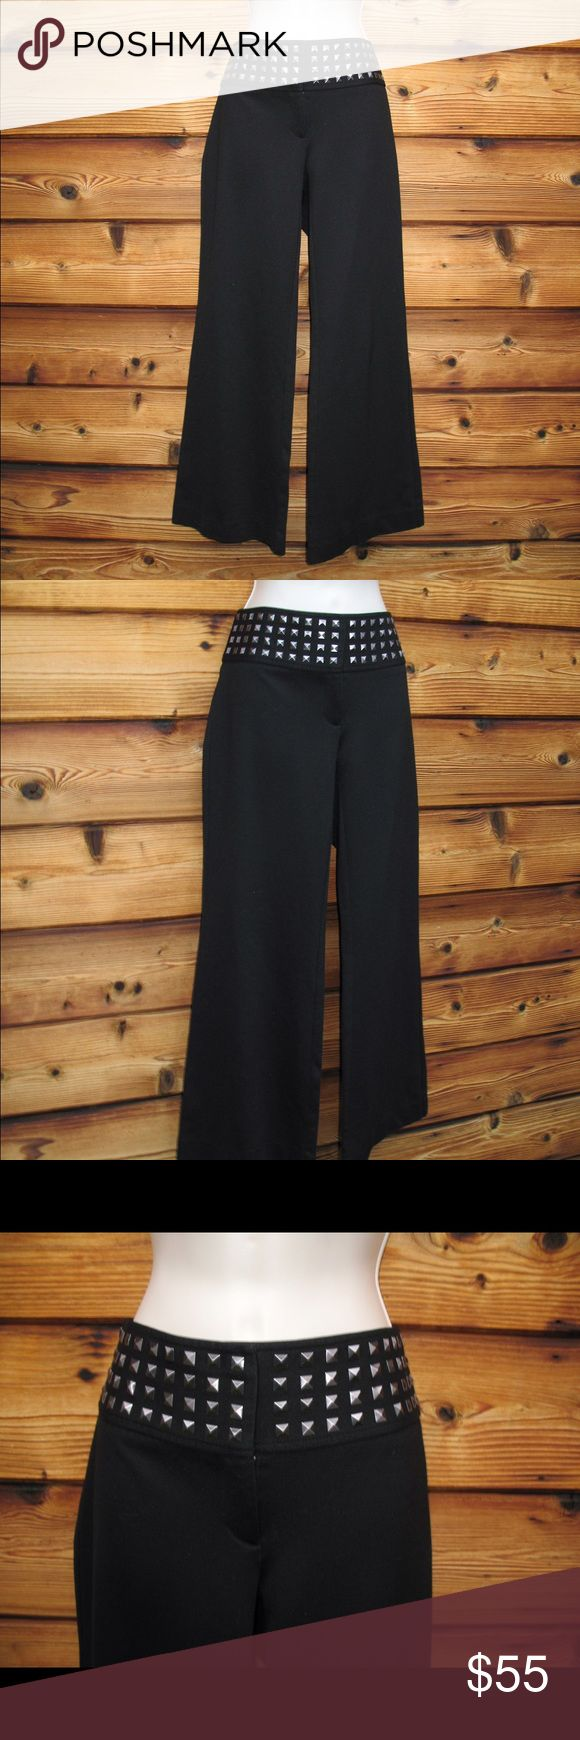 """INC International Concepts Ponte Knit Ankle Pants INC International Concepts Thick Ponte Knit Ankle Pants  *Excellent pre-owned condition. No stains, holes or other signs of use.  Details: INC Size: 6 Color: Black with pewter color studs Thick ponte knit Wide-Leg Ankle length 3 1/4 inch waistband Three hook-eye/zip closure Two back button pockets 60% Rayon/35% Nylon/6% Spandex Machine Wash Inside Out  Measurements: Waist: 32"""" Hips: 36"""" Front Rise: 8 1/2"""" Leg Opening: 22"""" Inseam: 28"""" INC…"""